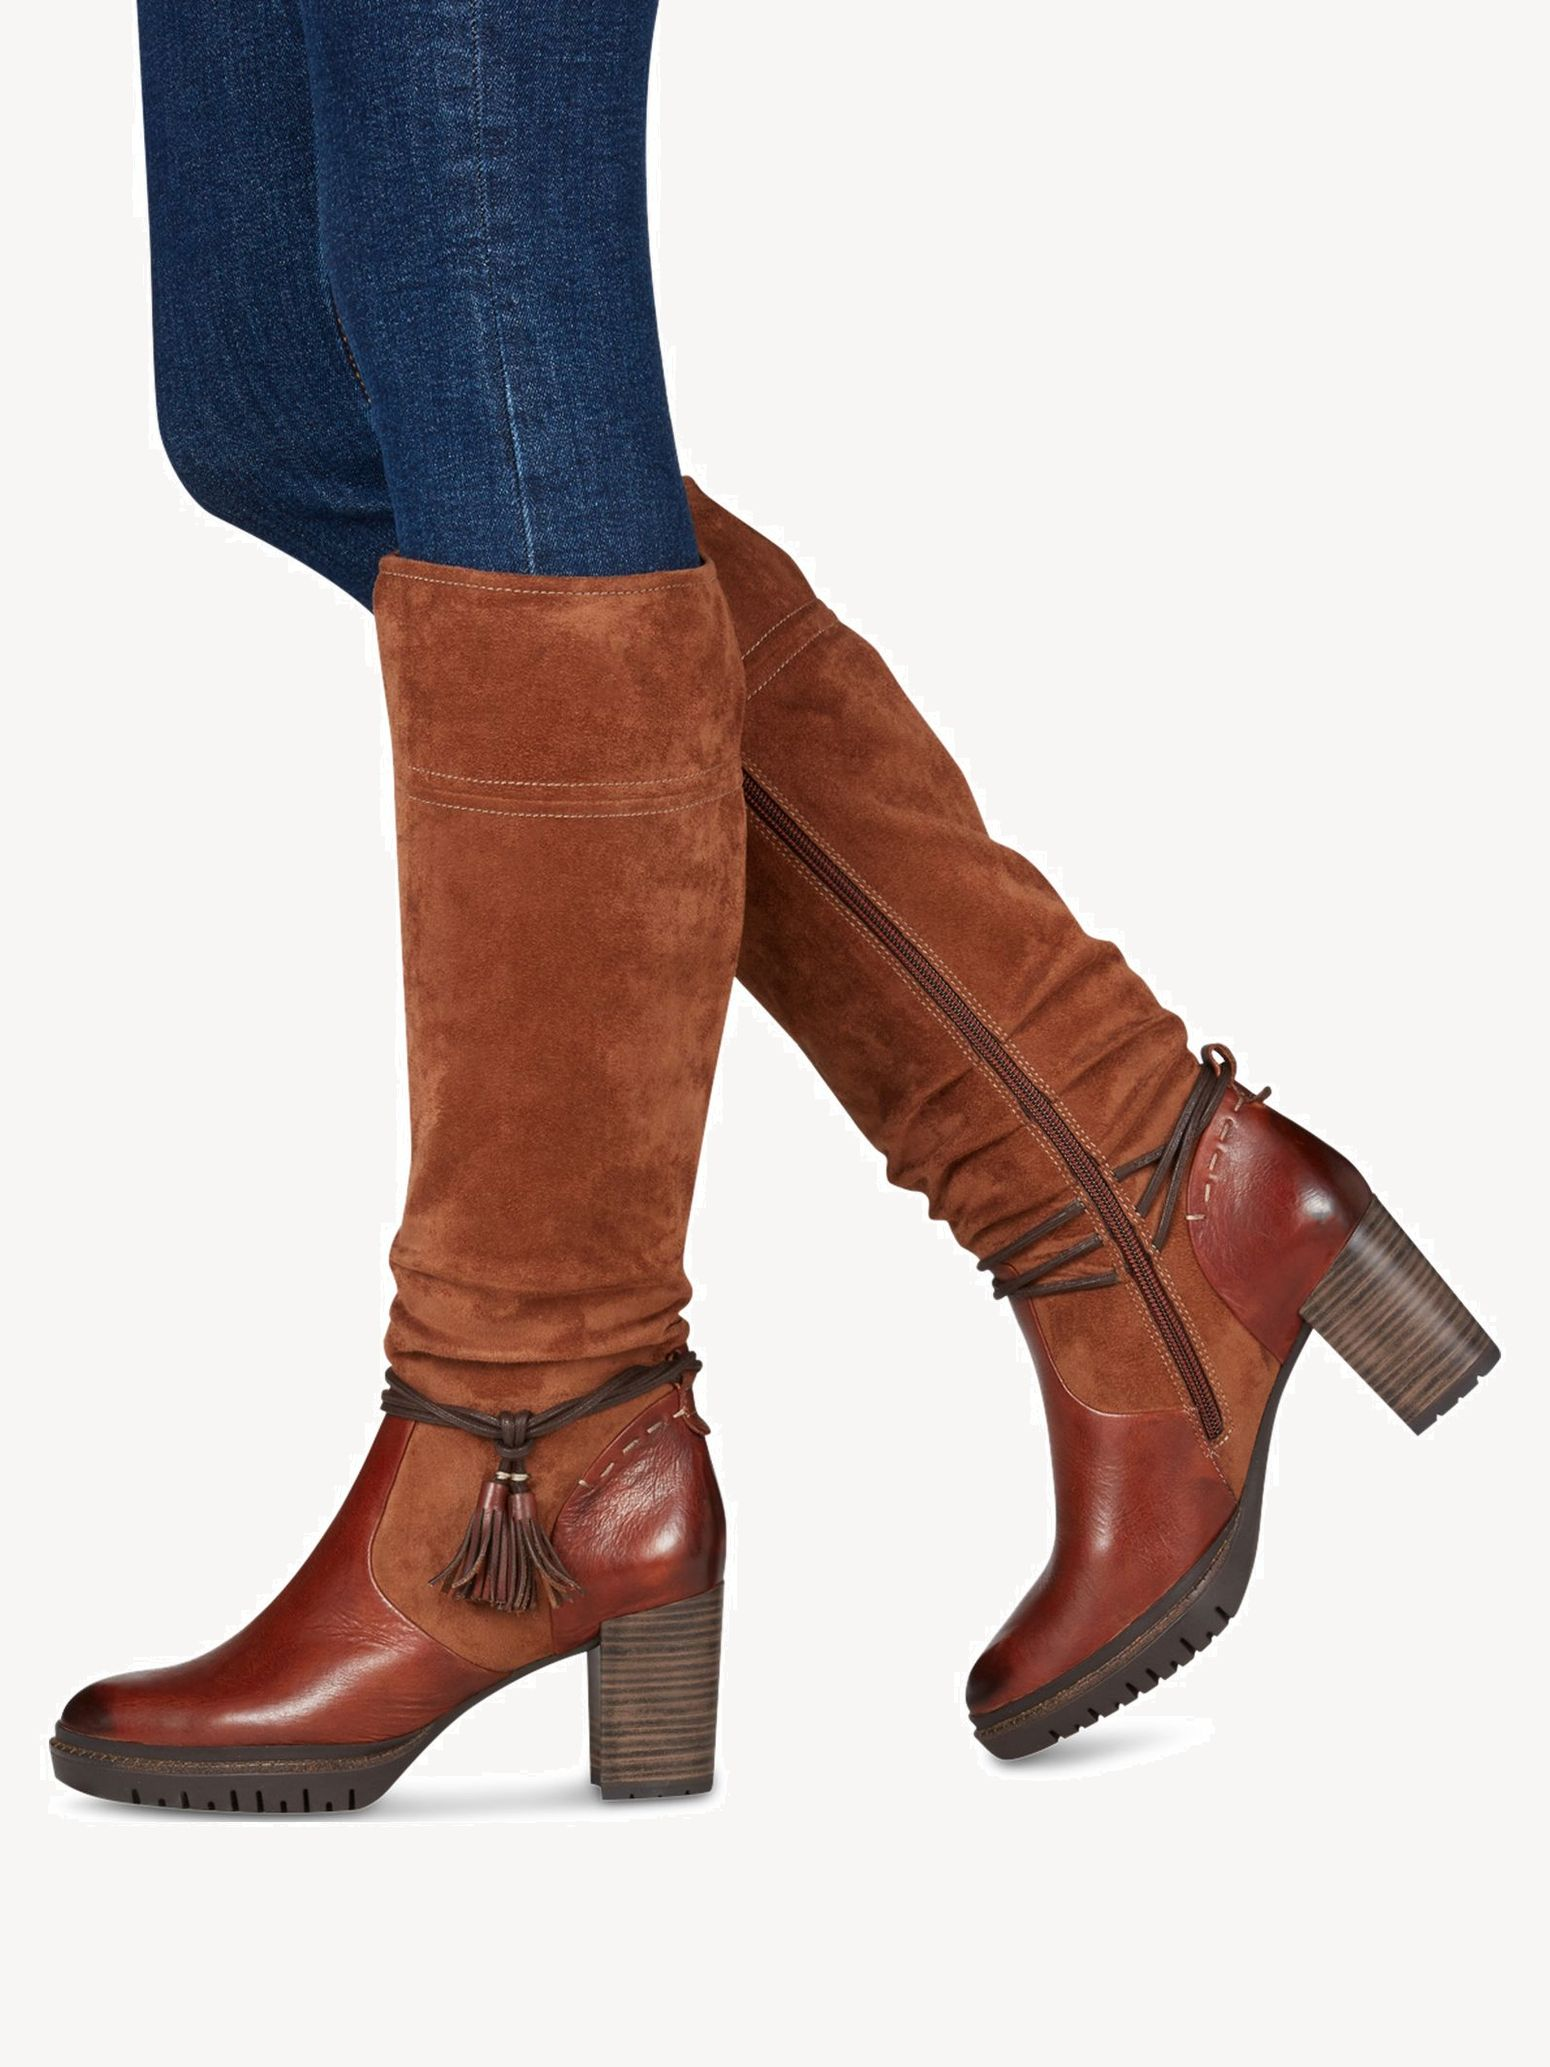 Boots - brown, COGNAC, hi-res